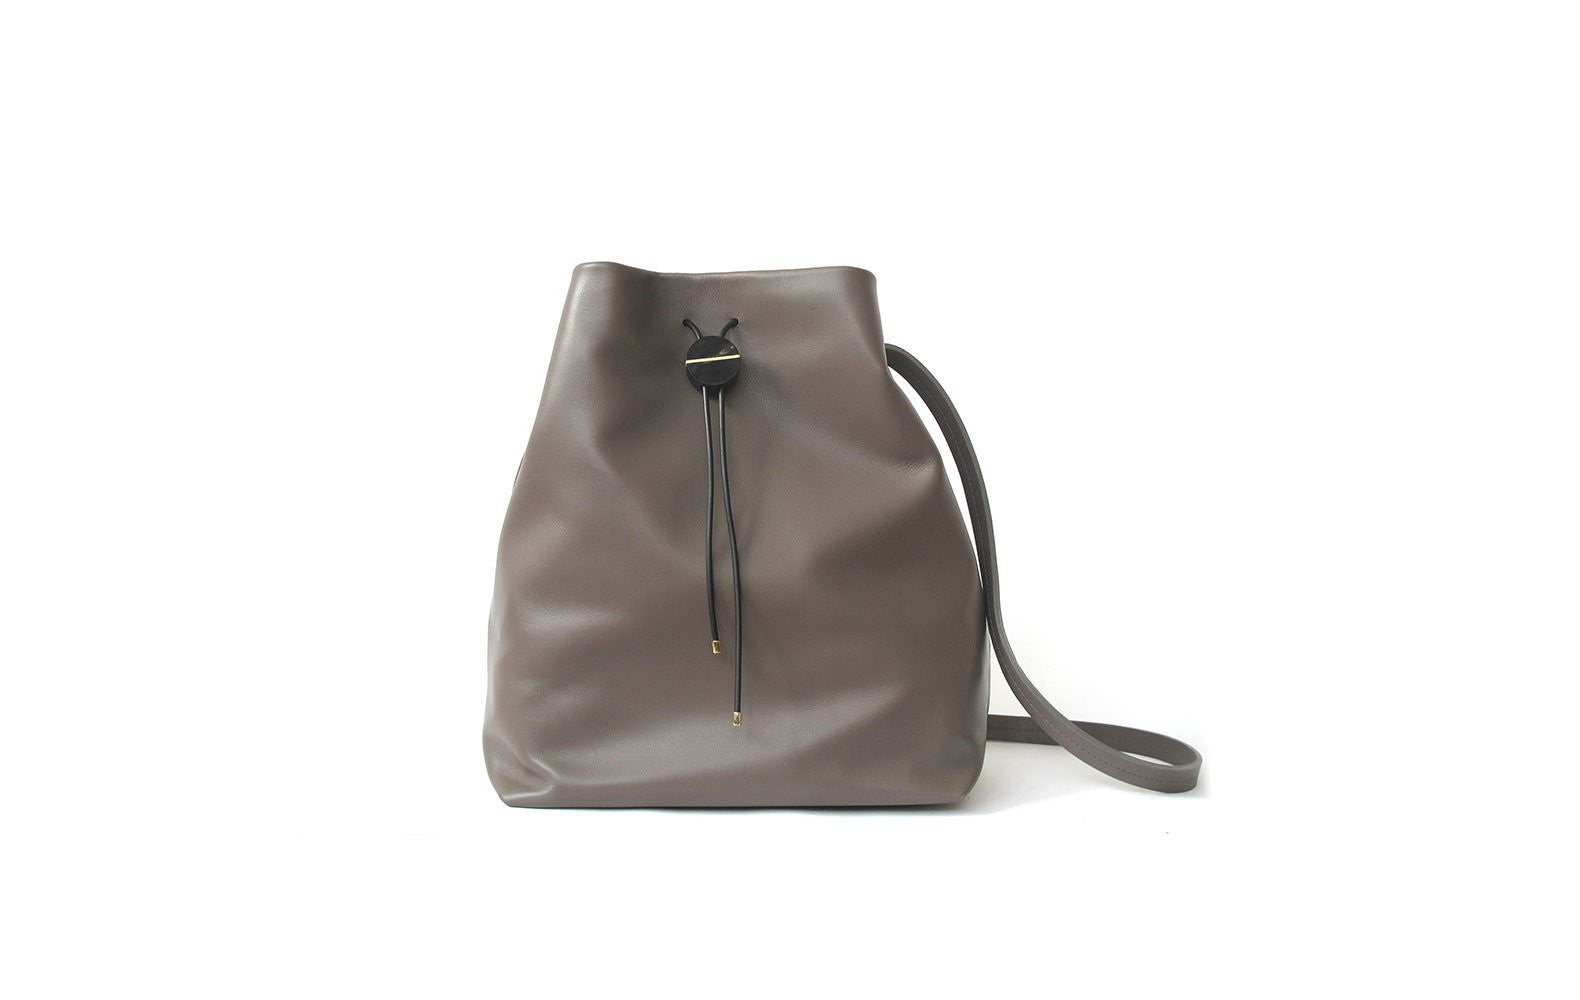 Romero Bucket Bag - Lesetta